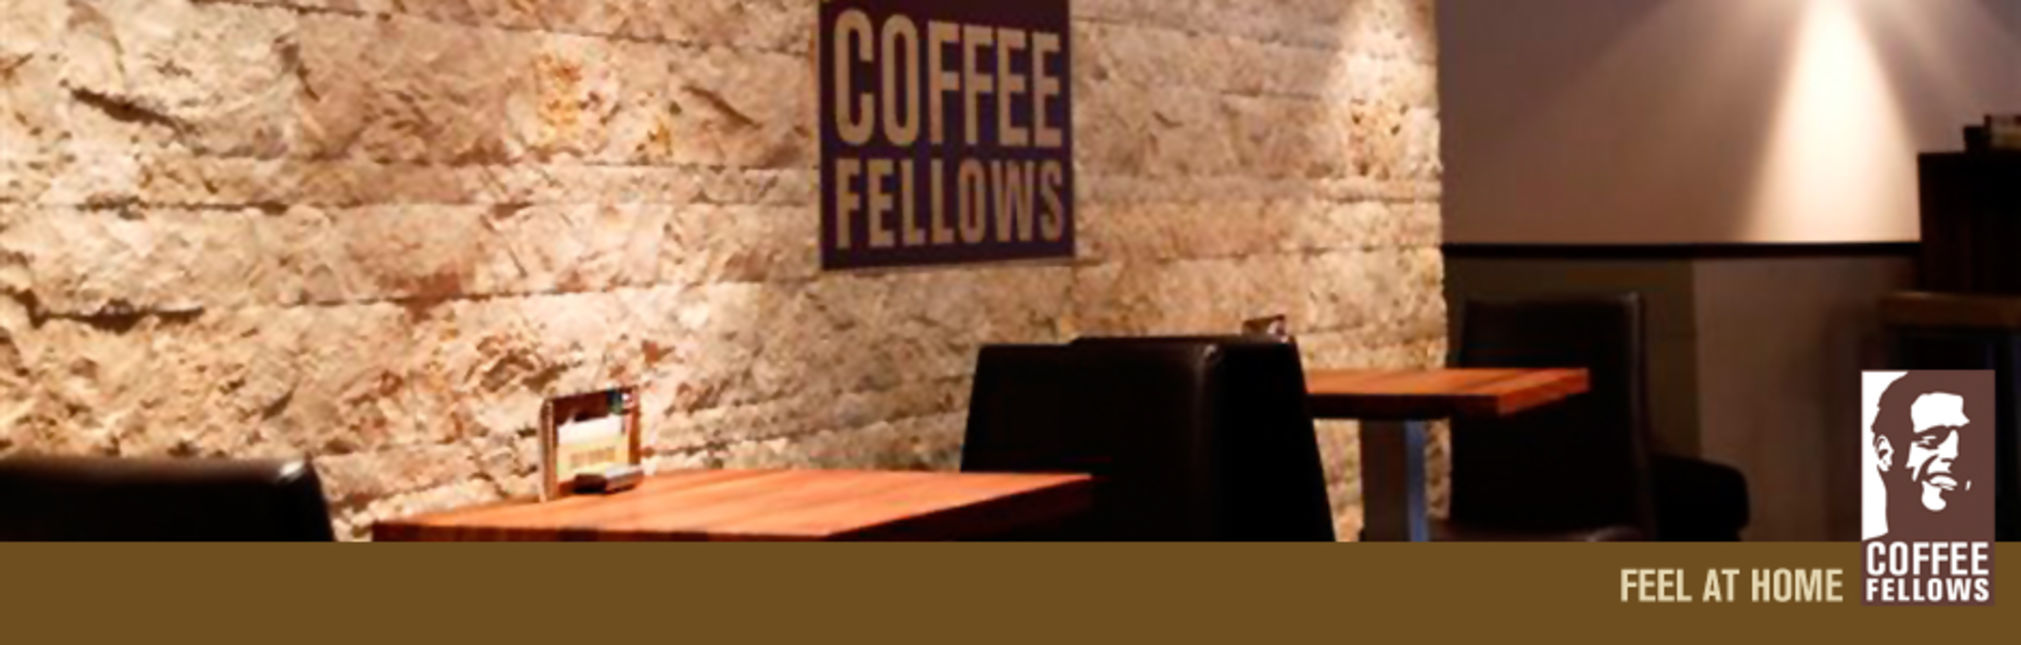 Coffee Fellows, HBF Halle (Saale)